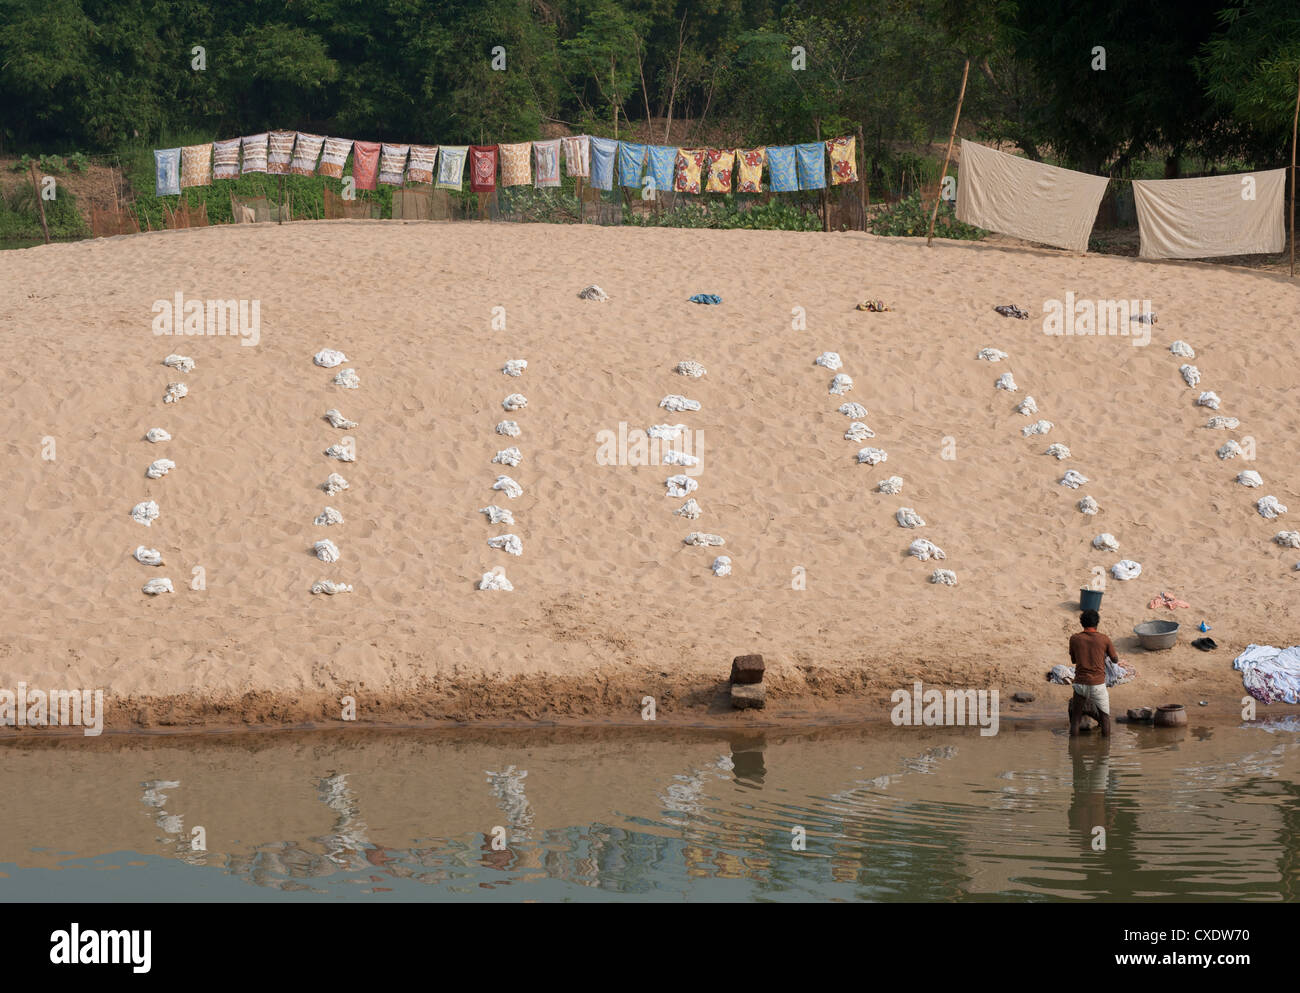 Dhobi wallah washing laundry in the river with very organised piles of white washing laid out on the sand, Raghurajpur, - Stock Image